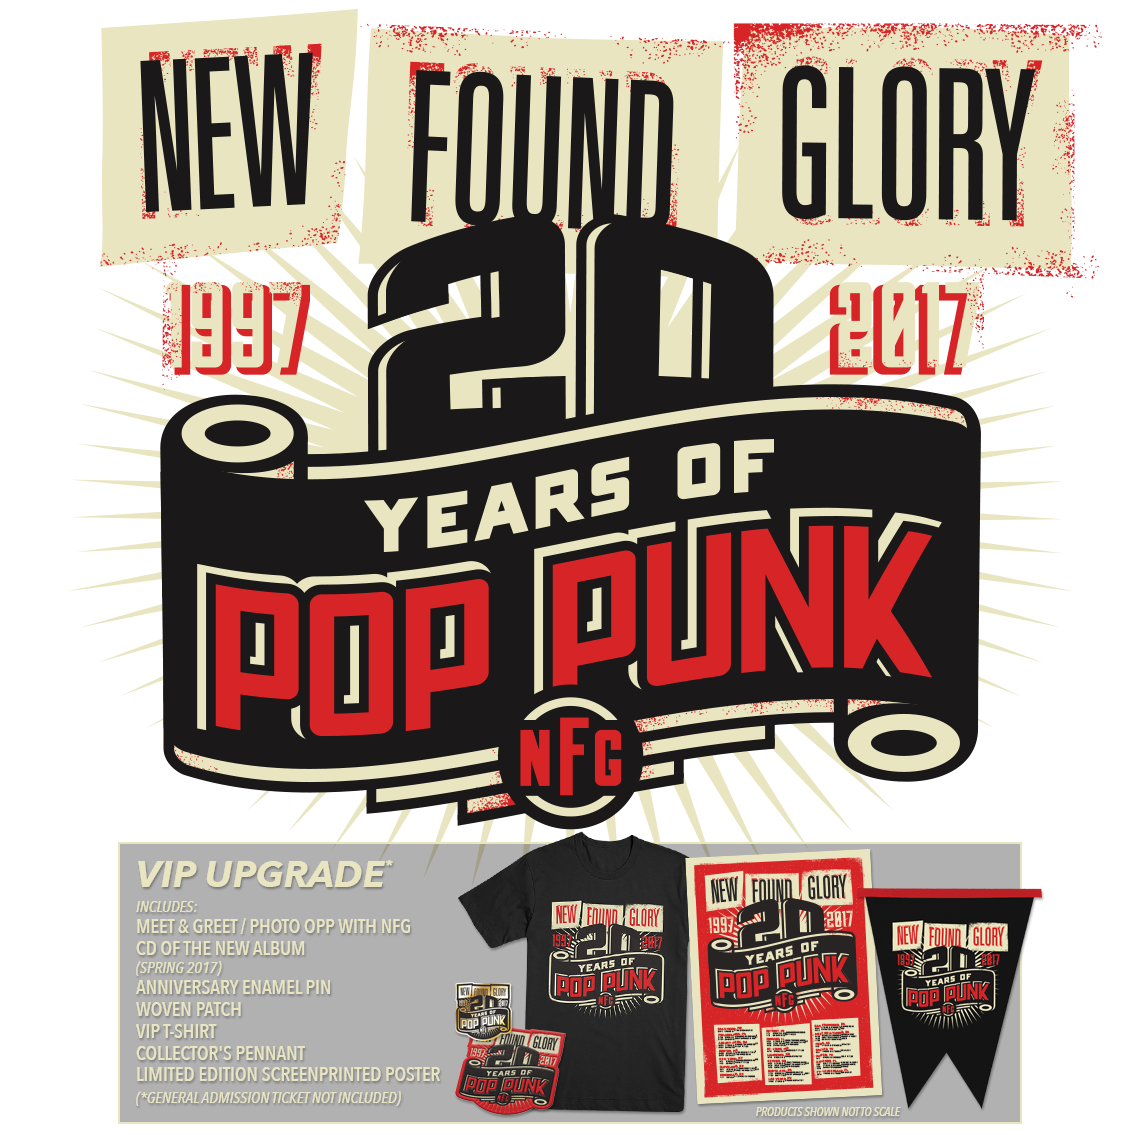 Ticketspin new found glory 20 years of pop punk tickets new found glory 20 years of pop punk tickets m4hsunfo